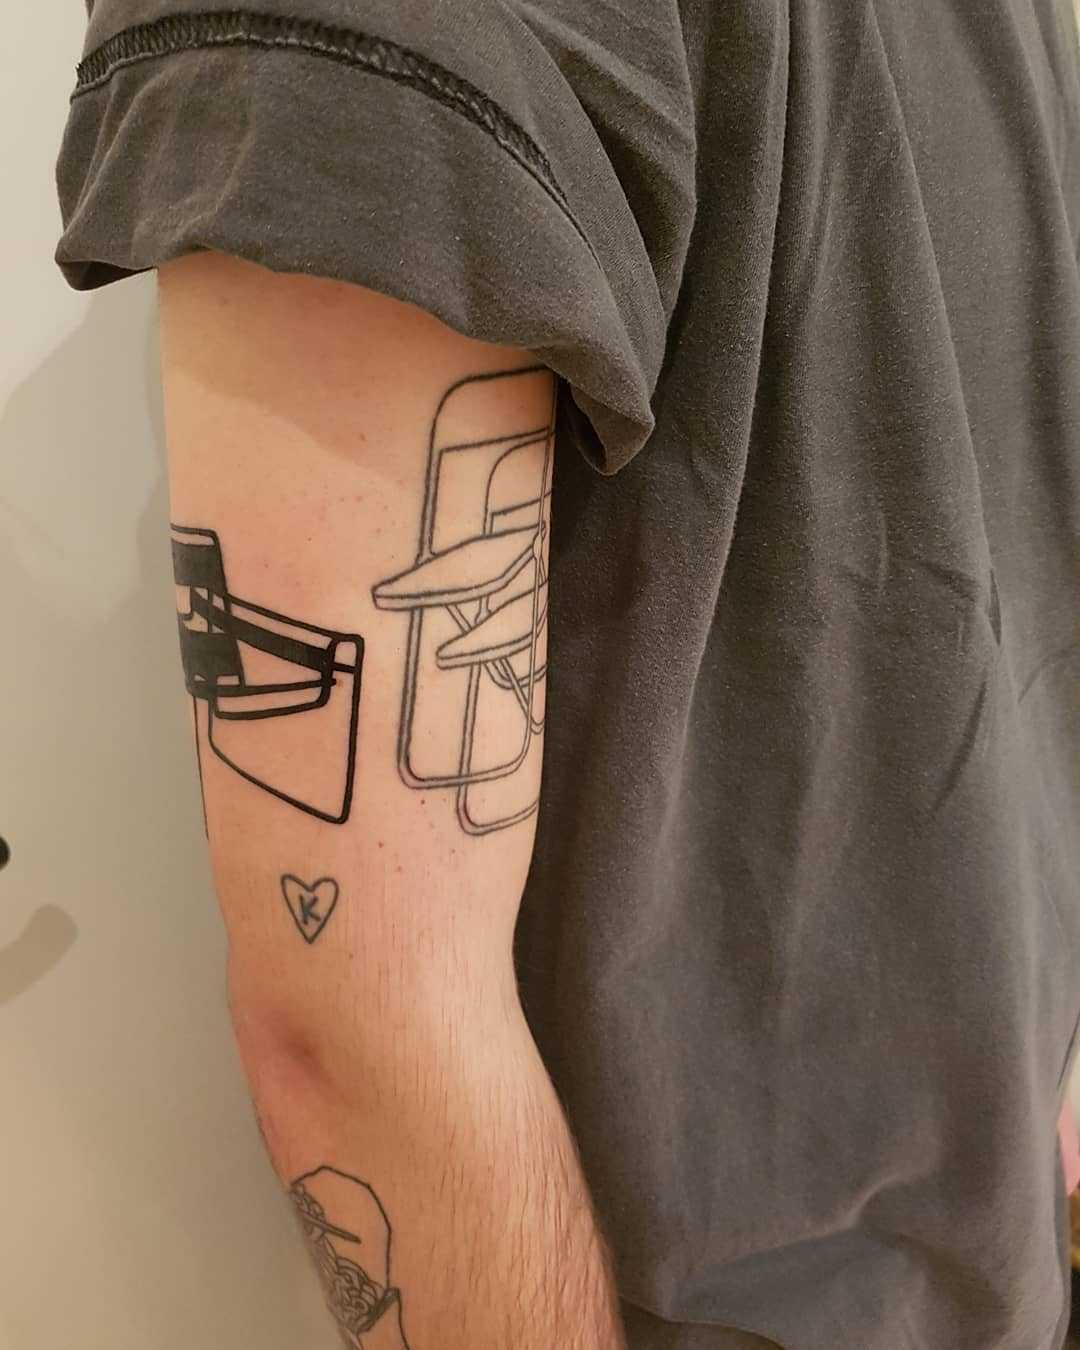 Wassily Chair tattoo